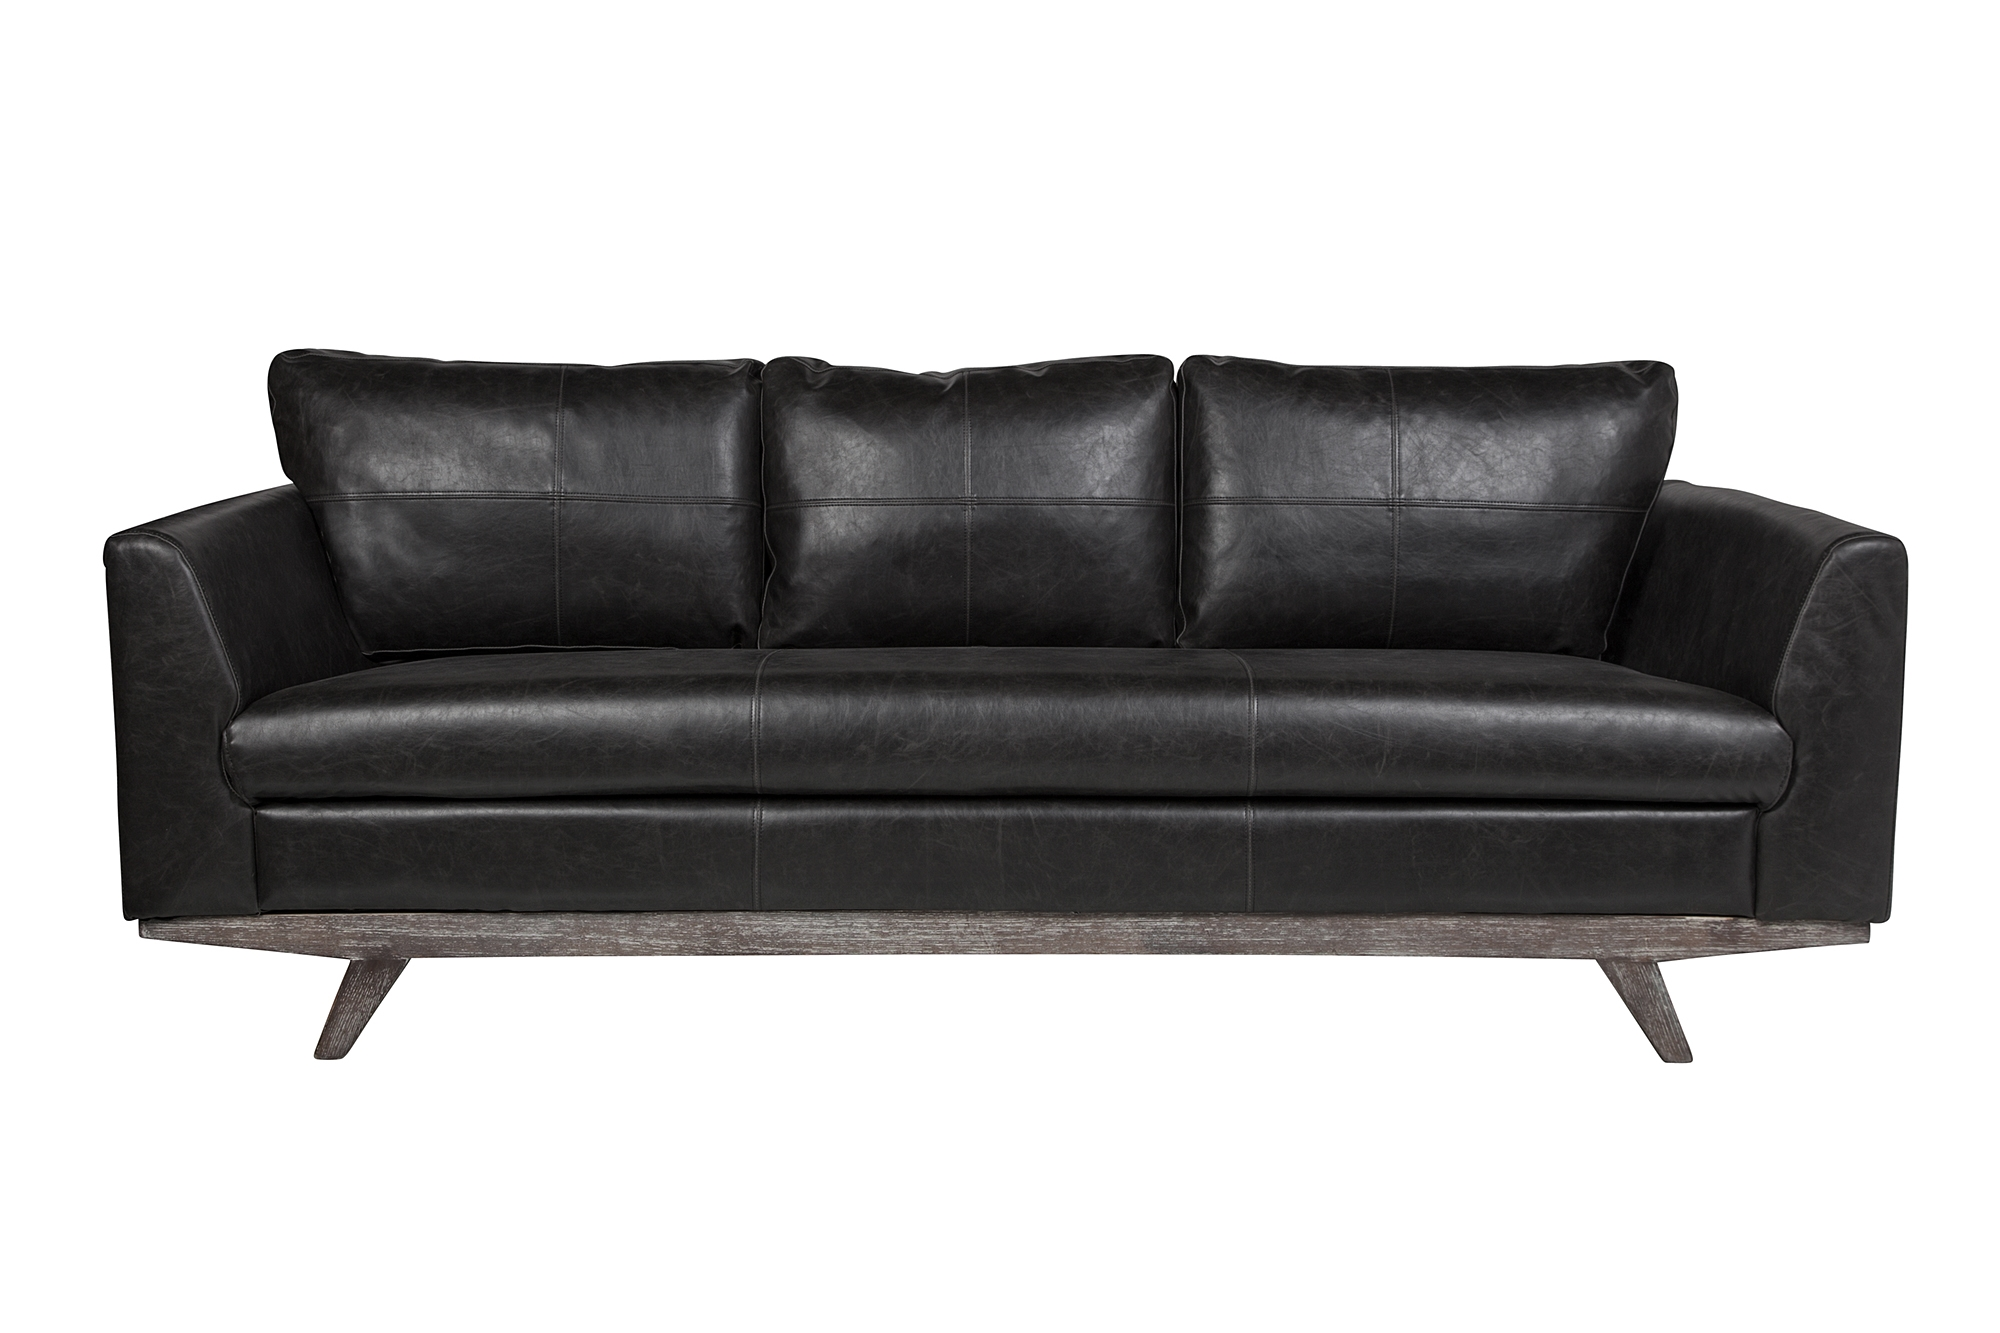 Maxwell 3 Seater Leather Sofa In